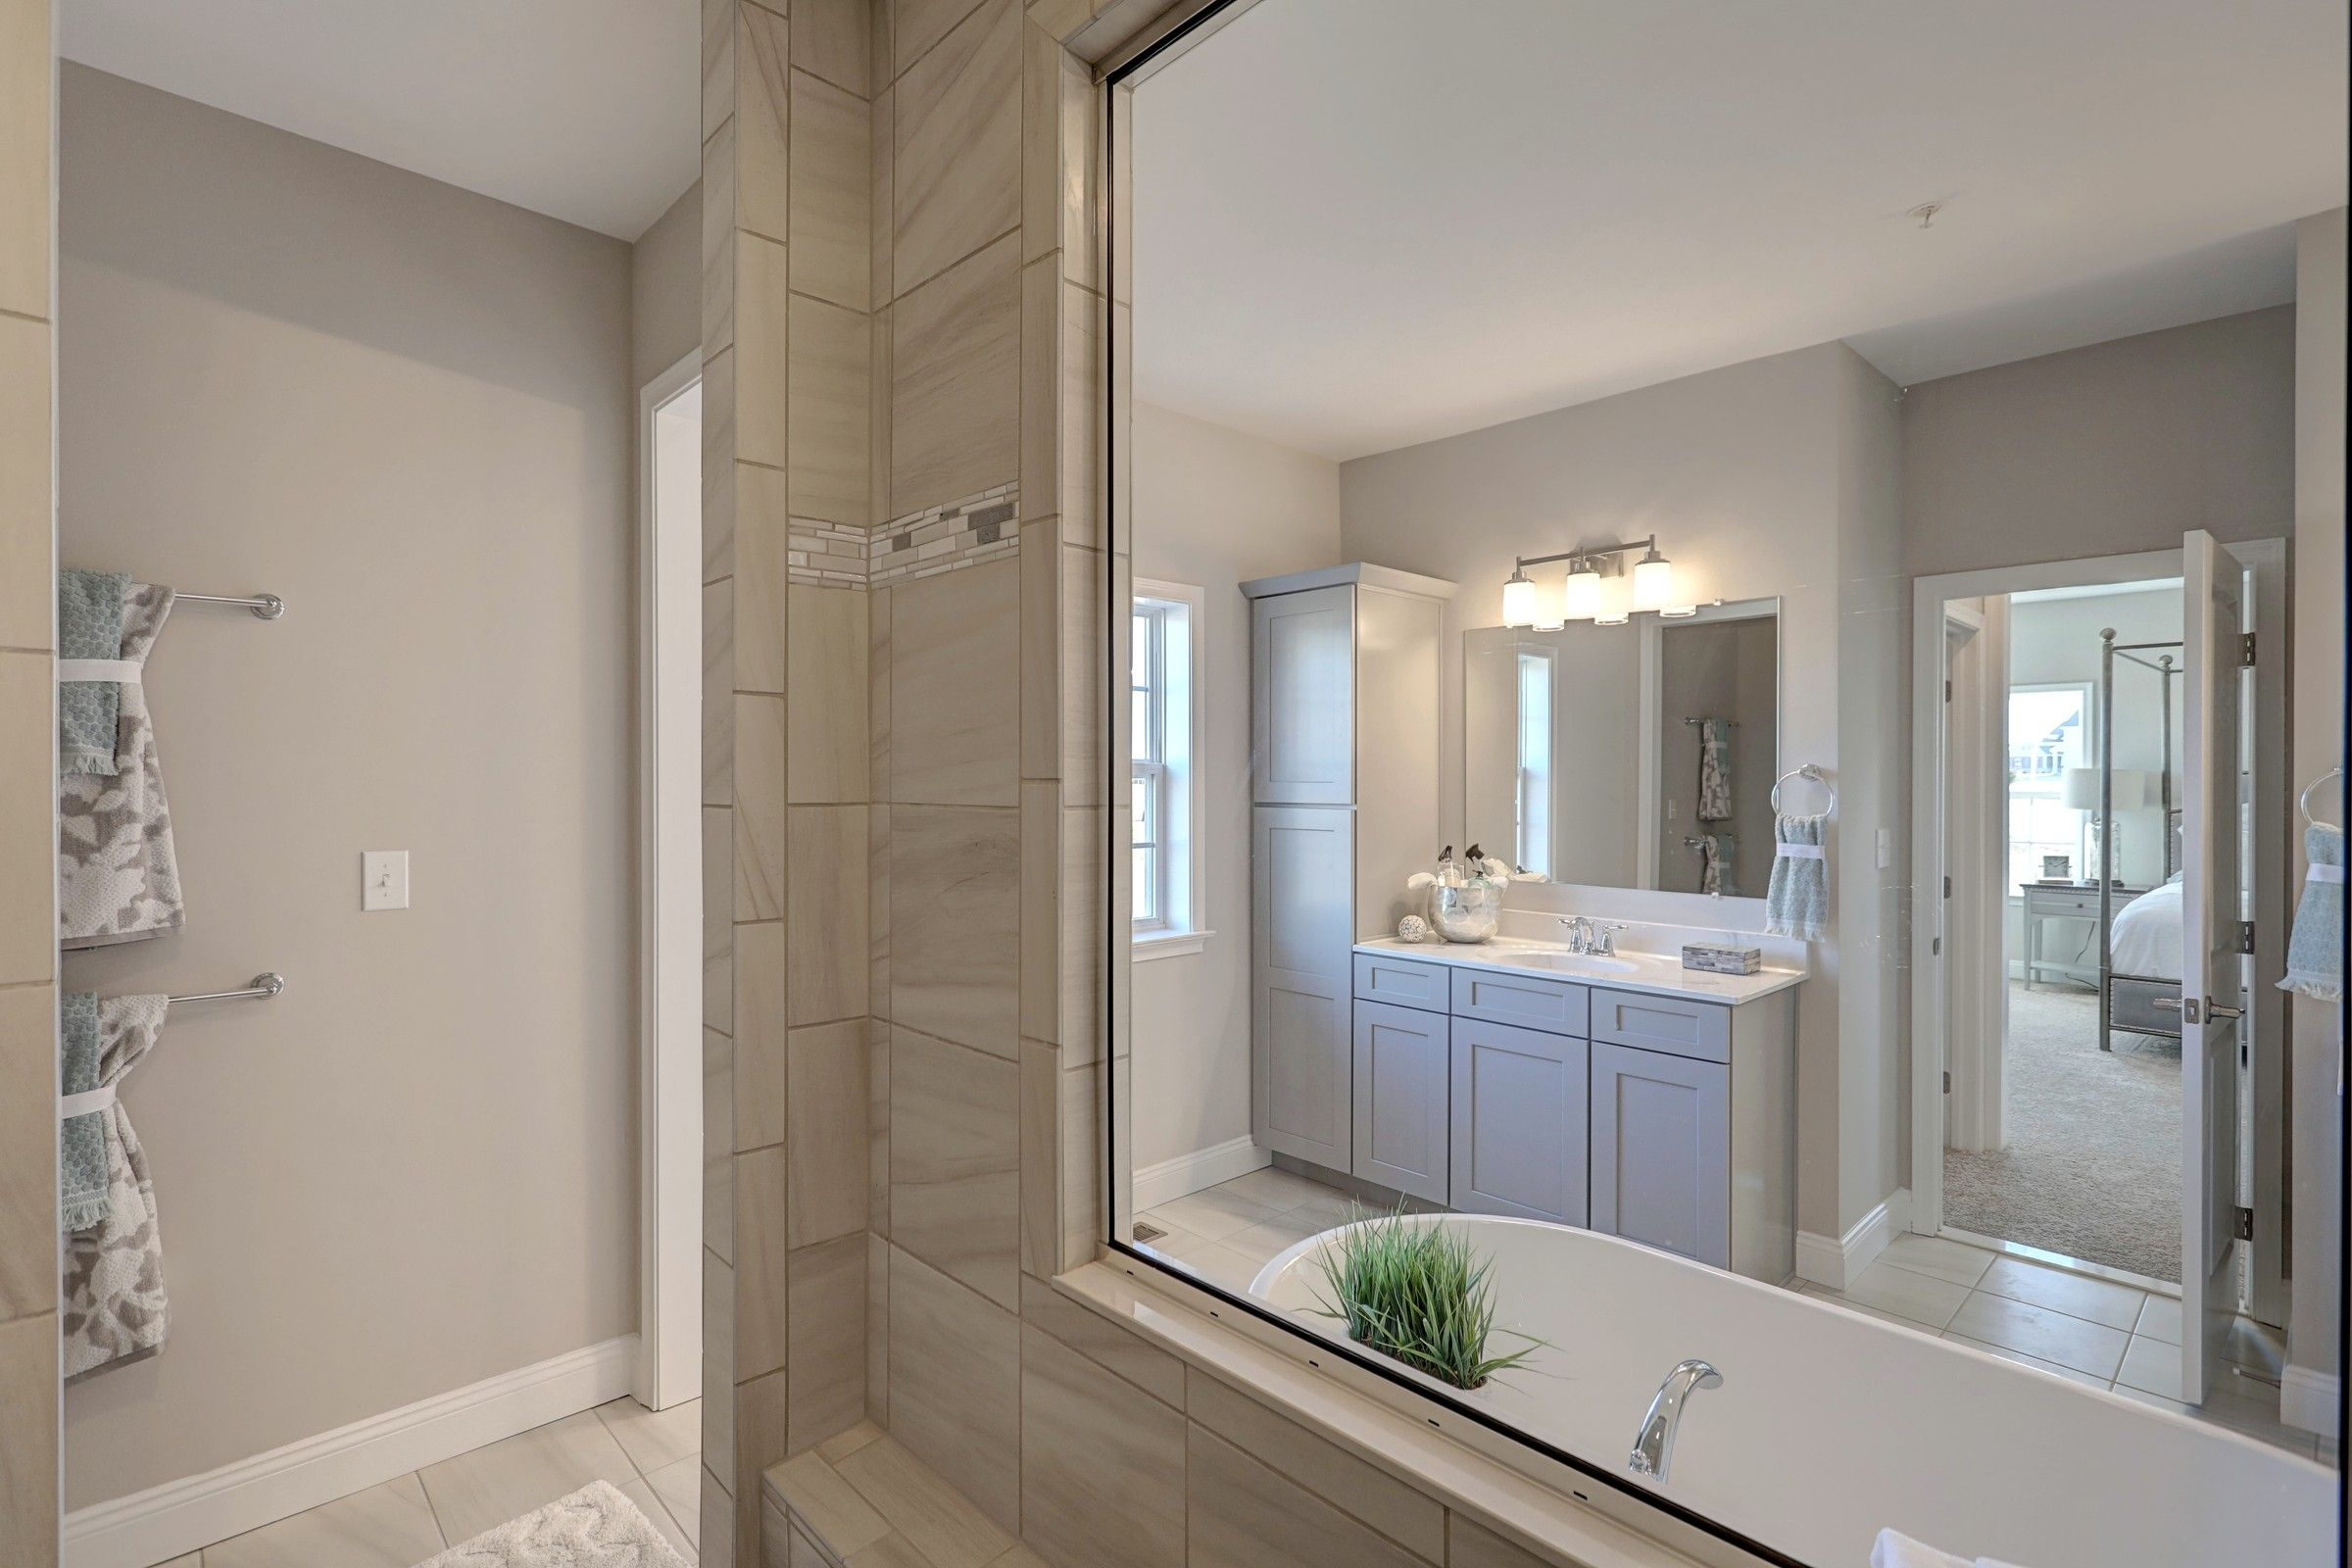 Bathroom featured in the Nottingham Bordeaux By Keystone Custom Homes in York, PA